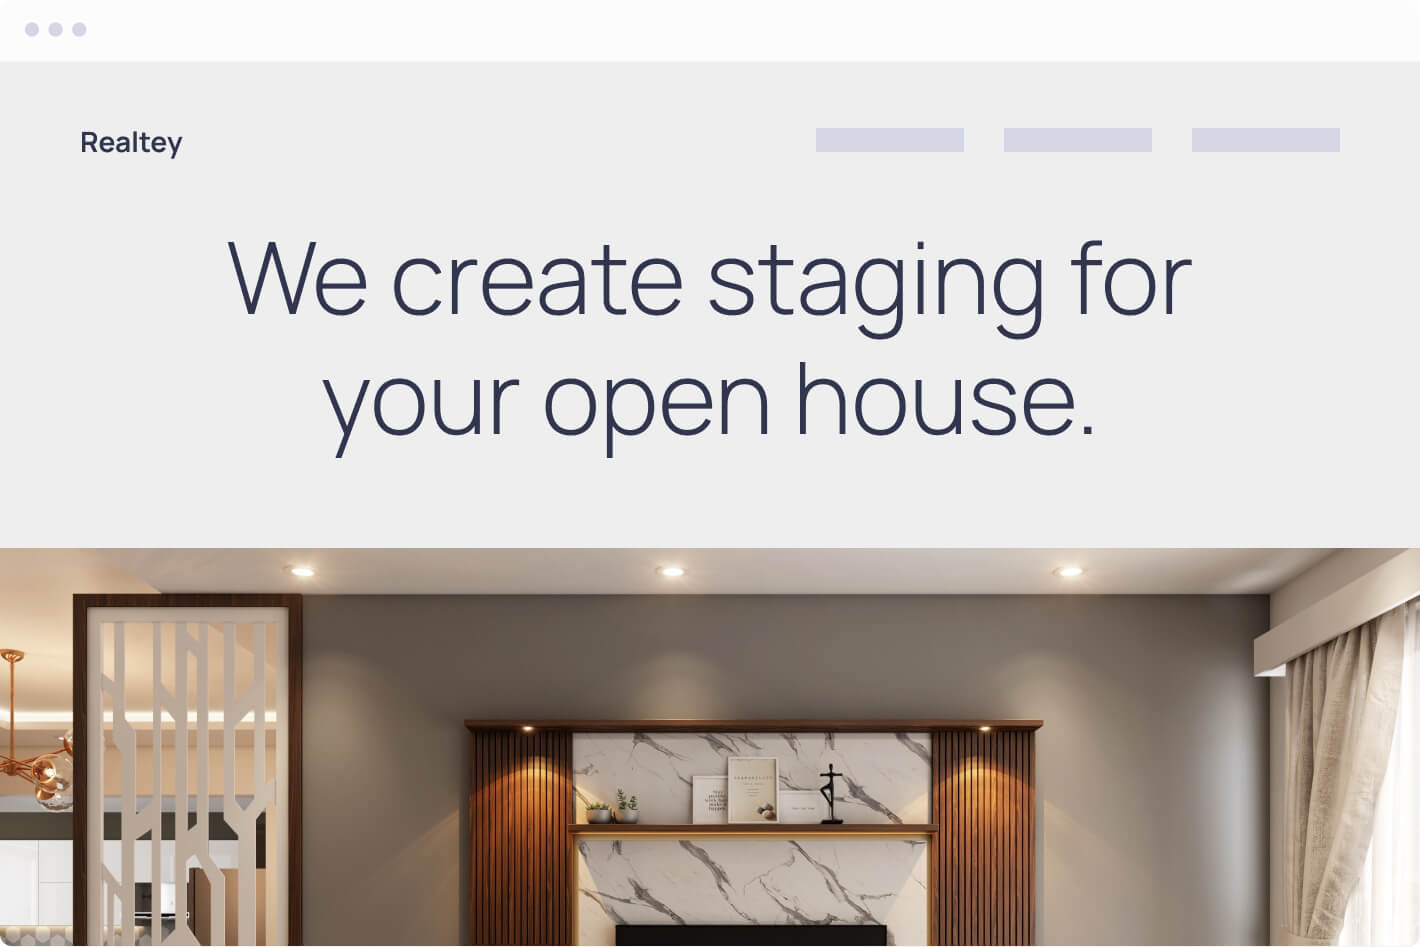 Browser mockup of a real estate purchase website